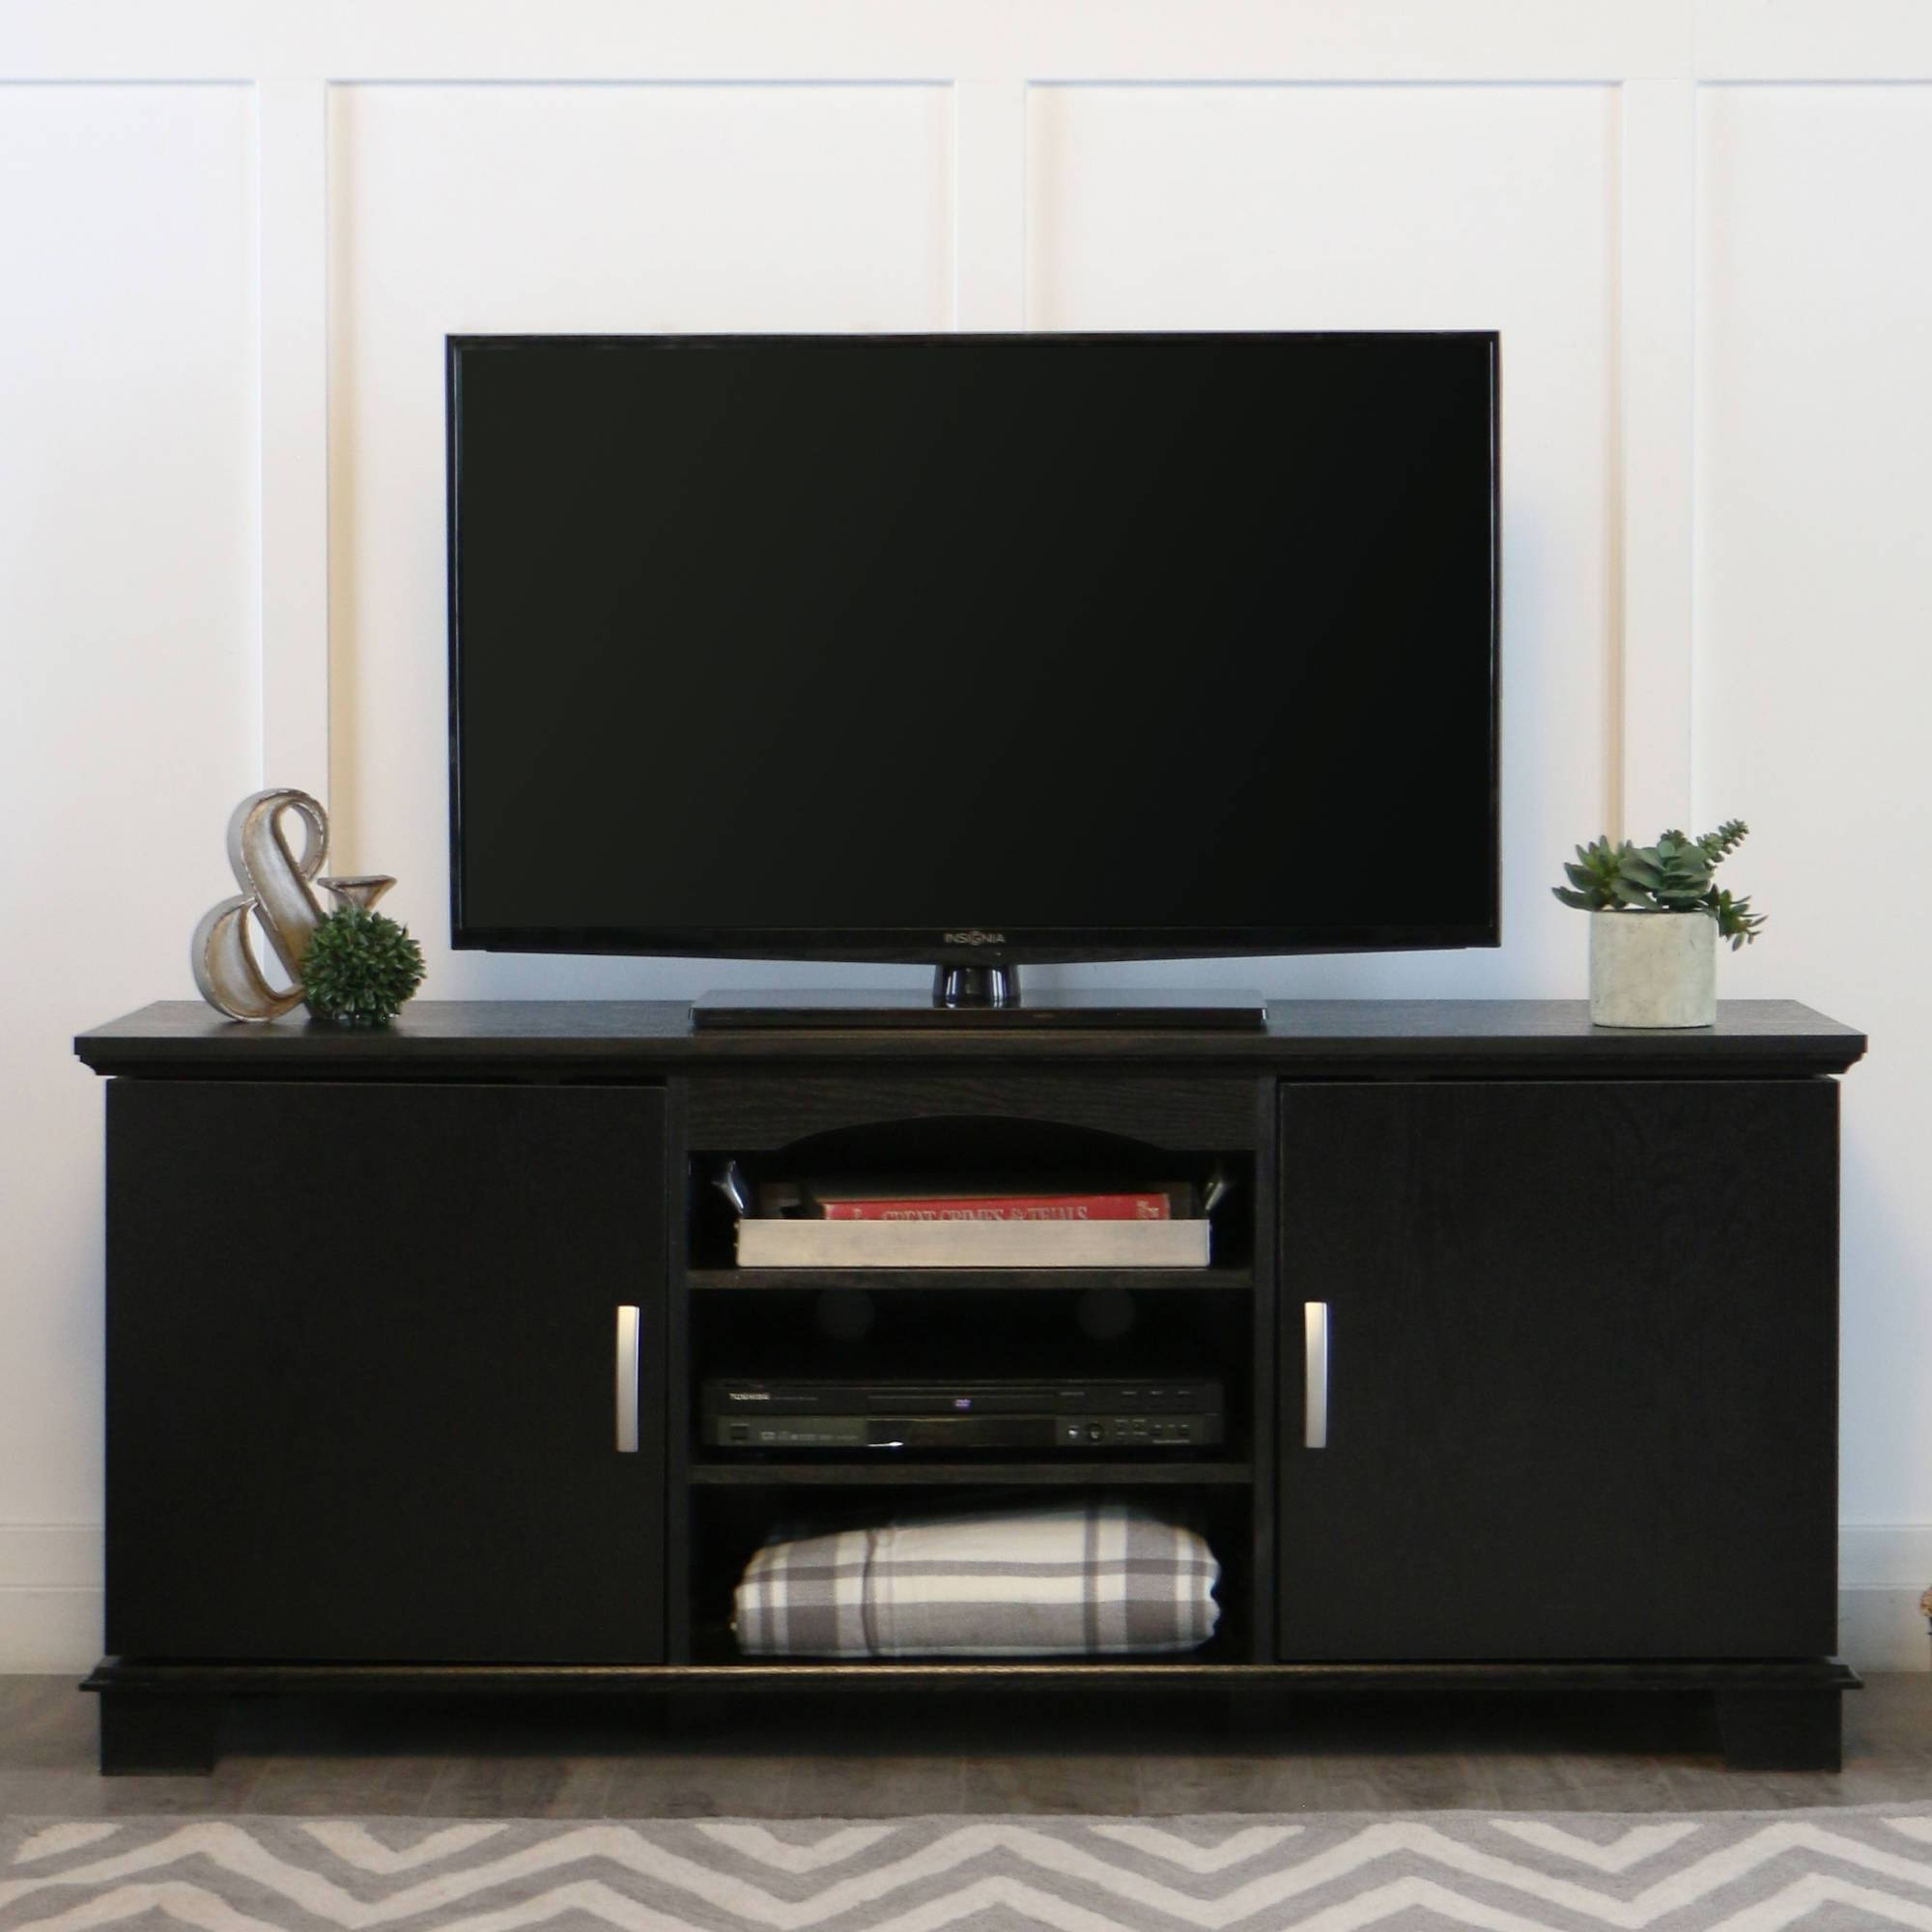 "Walker Edison Black Tv Stand For Tvs Up To 65"", Multiple Colors pertaining to Tv Stands For Large Tvs (Image 15 of 15)"